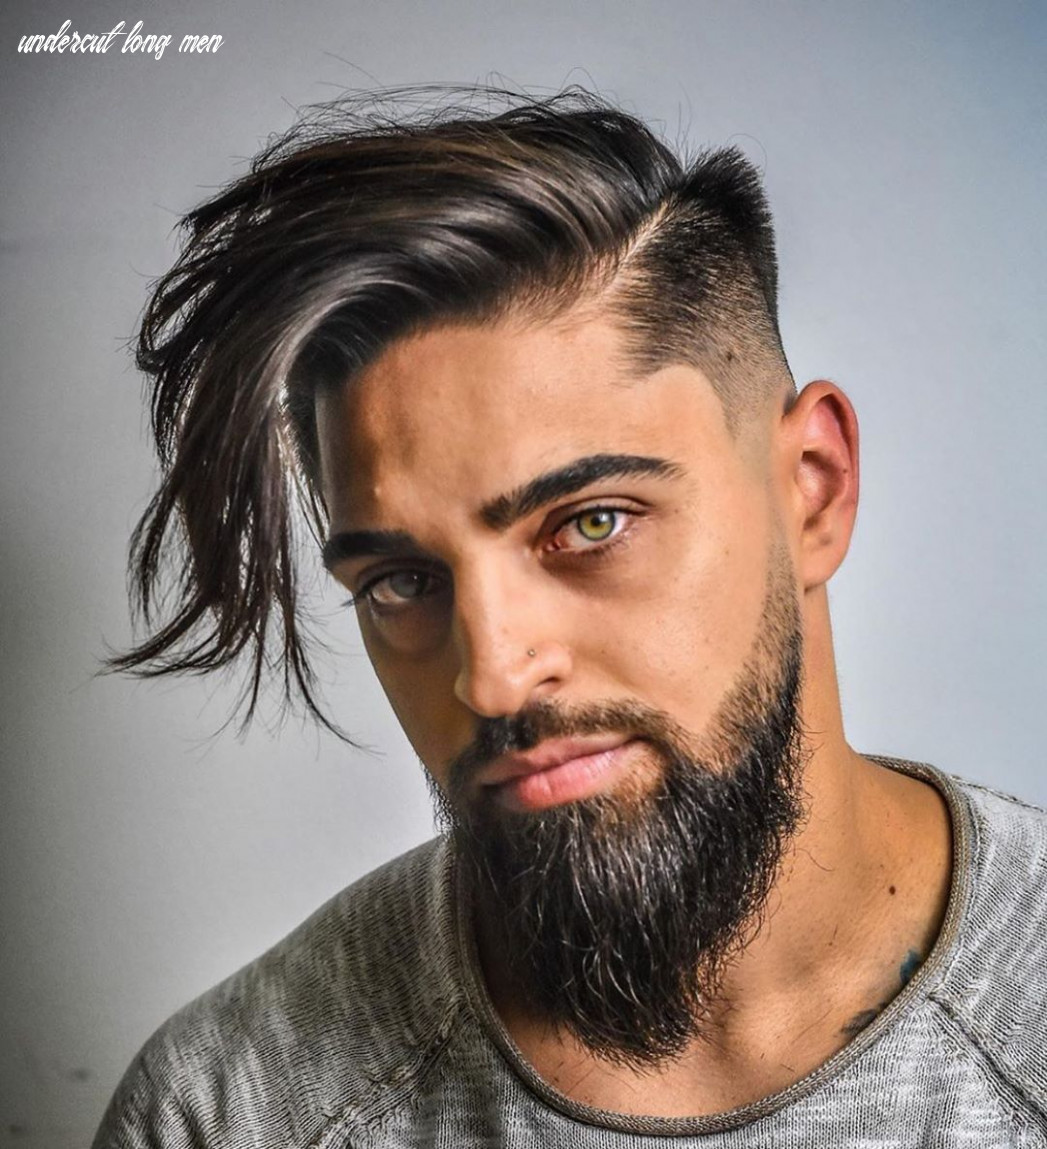 Pin on hair stylish men undercut long men